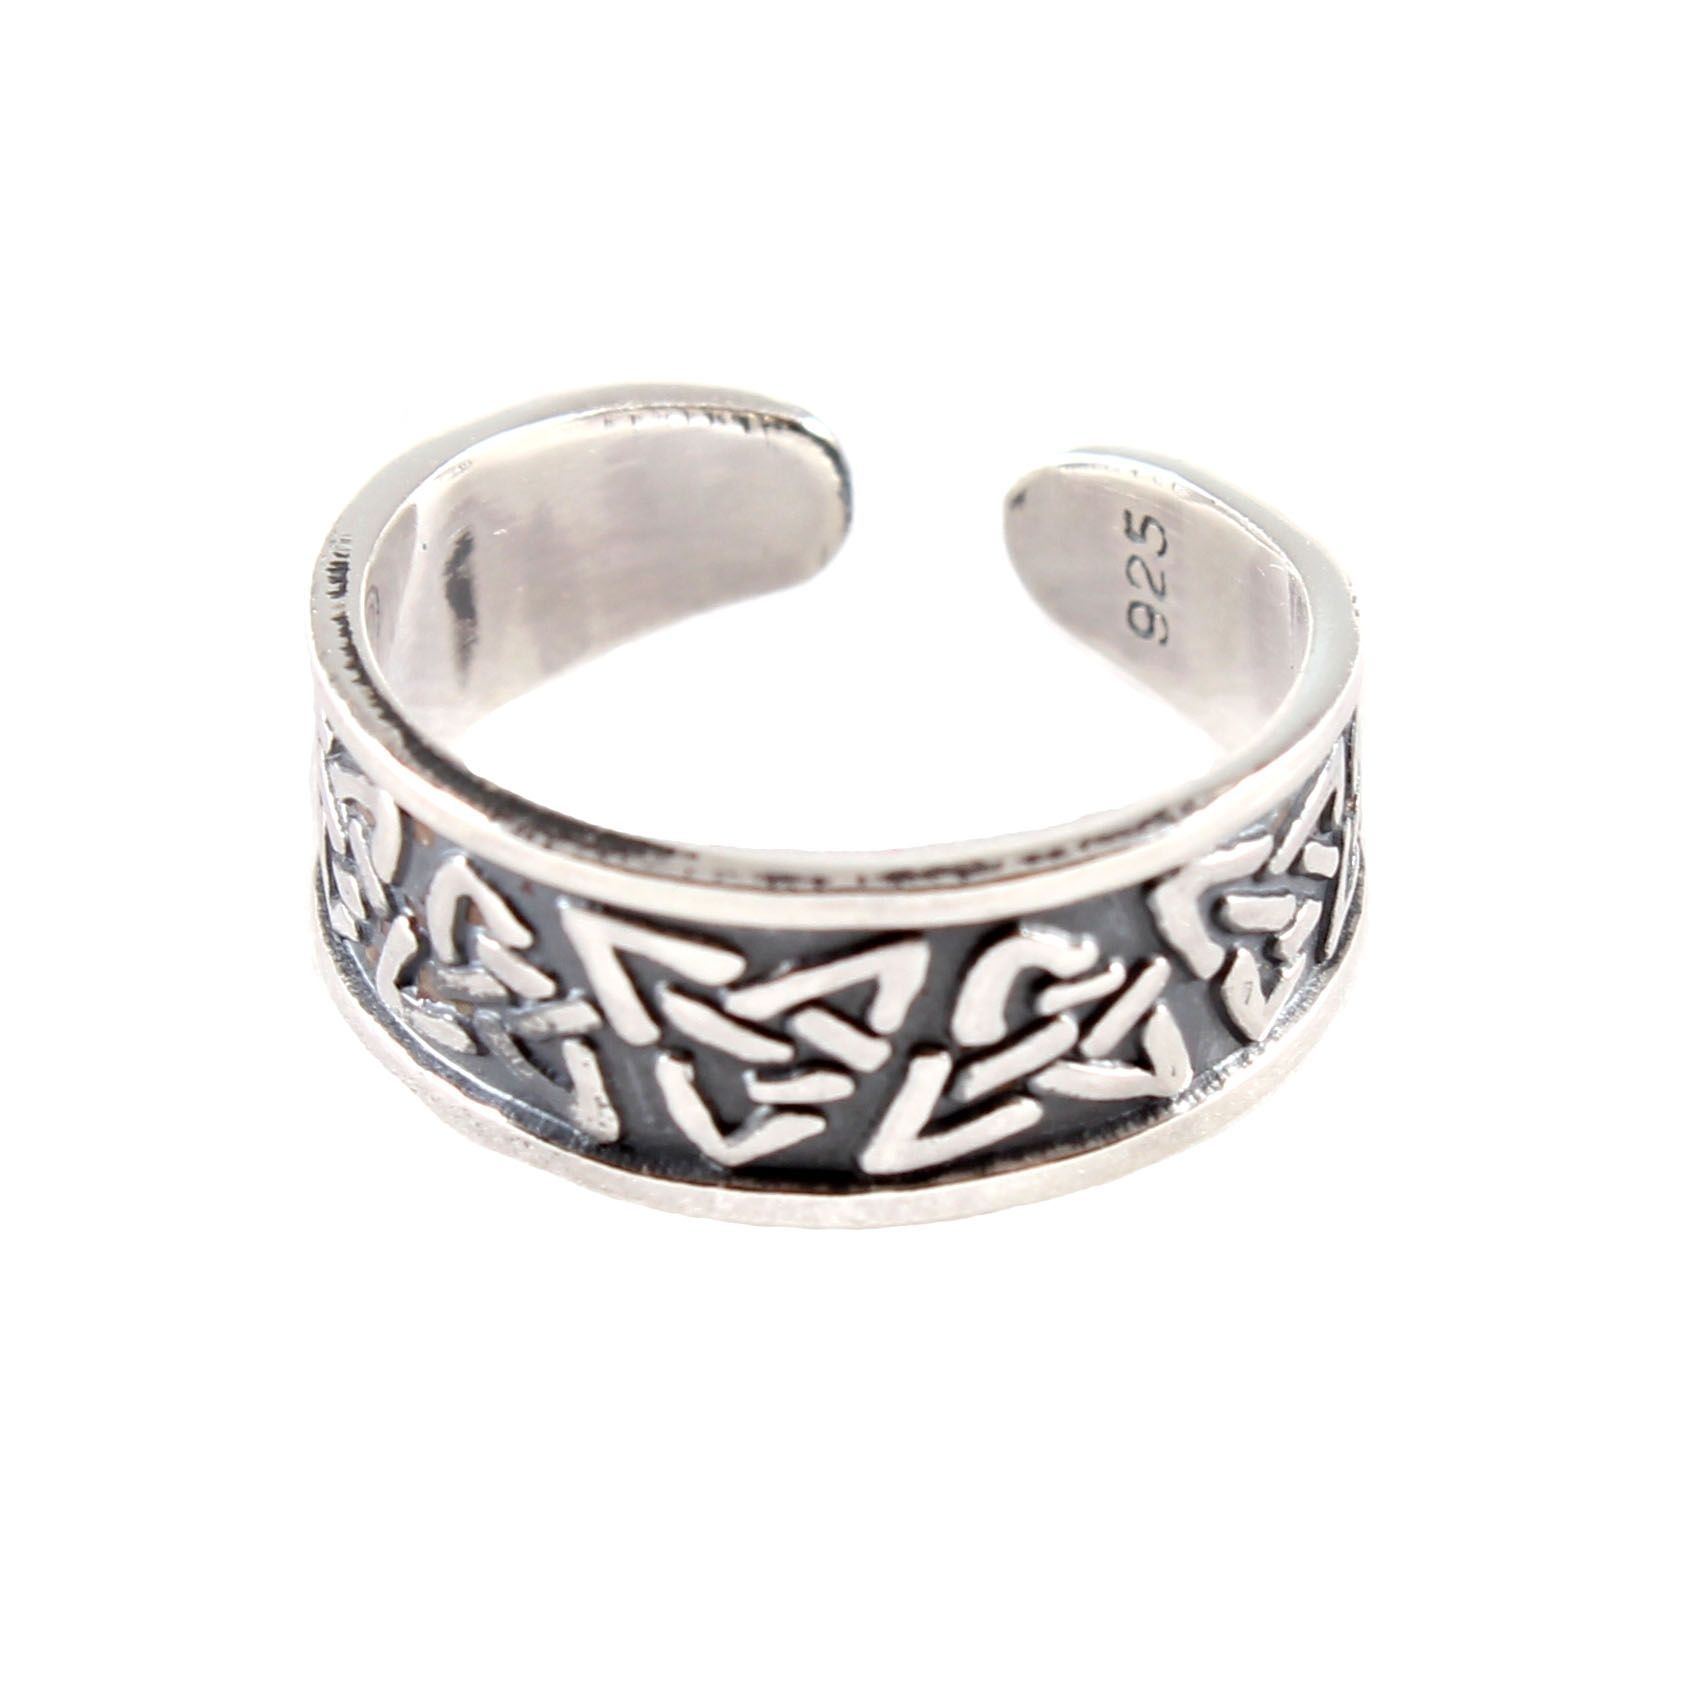 Charm School Uk > Sterling Silver Toe Rings > Celtic Design Intended For Best And Newest Silver Toe Rings (View 5 of 15)